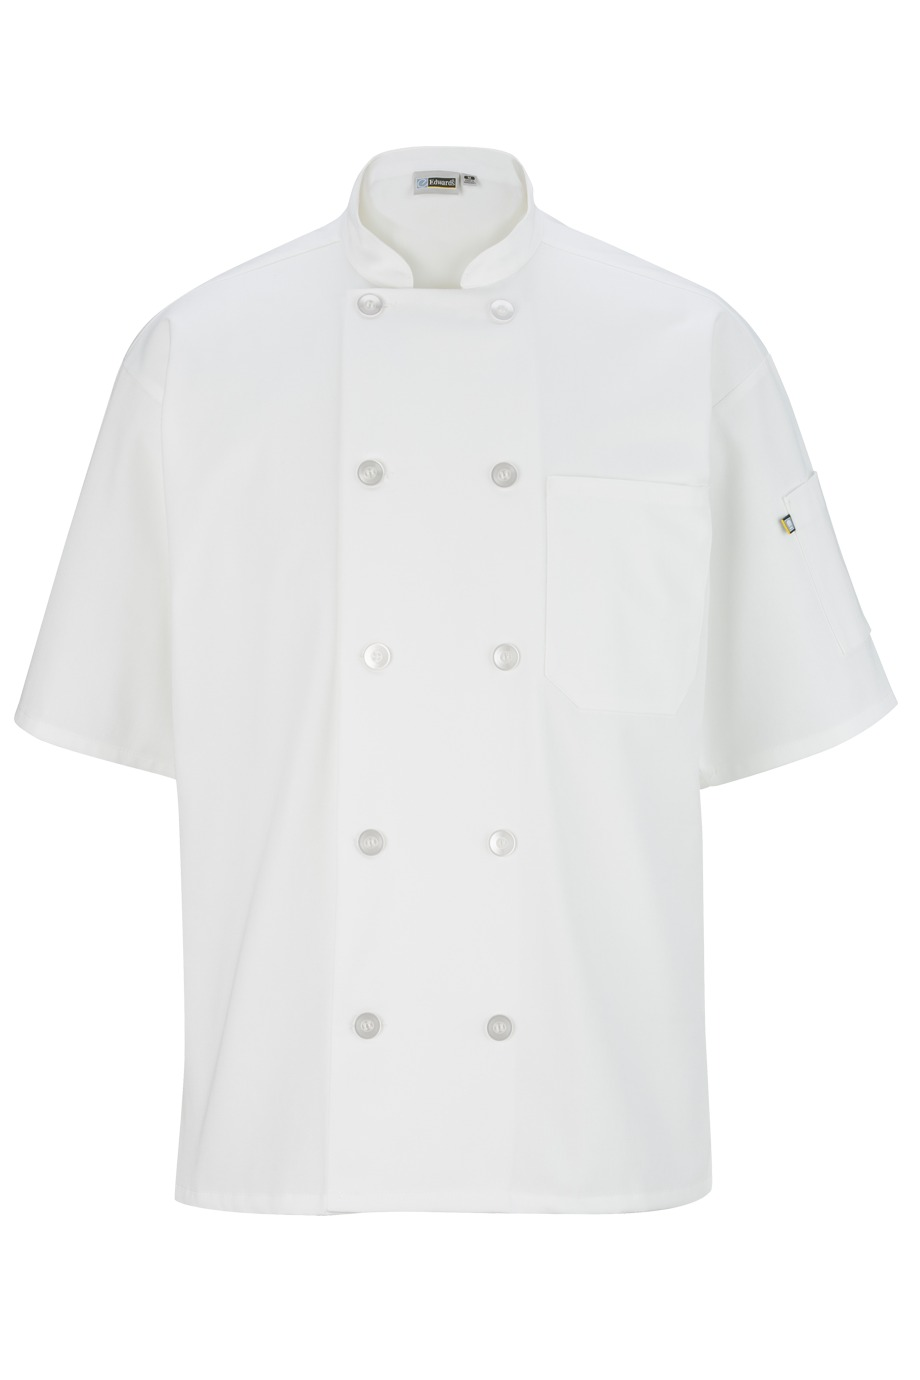 Edwards Garment 3306 - Casual 10 Button Short Sleeve ...